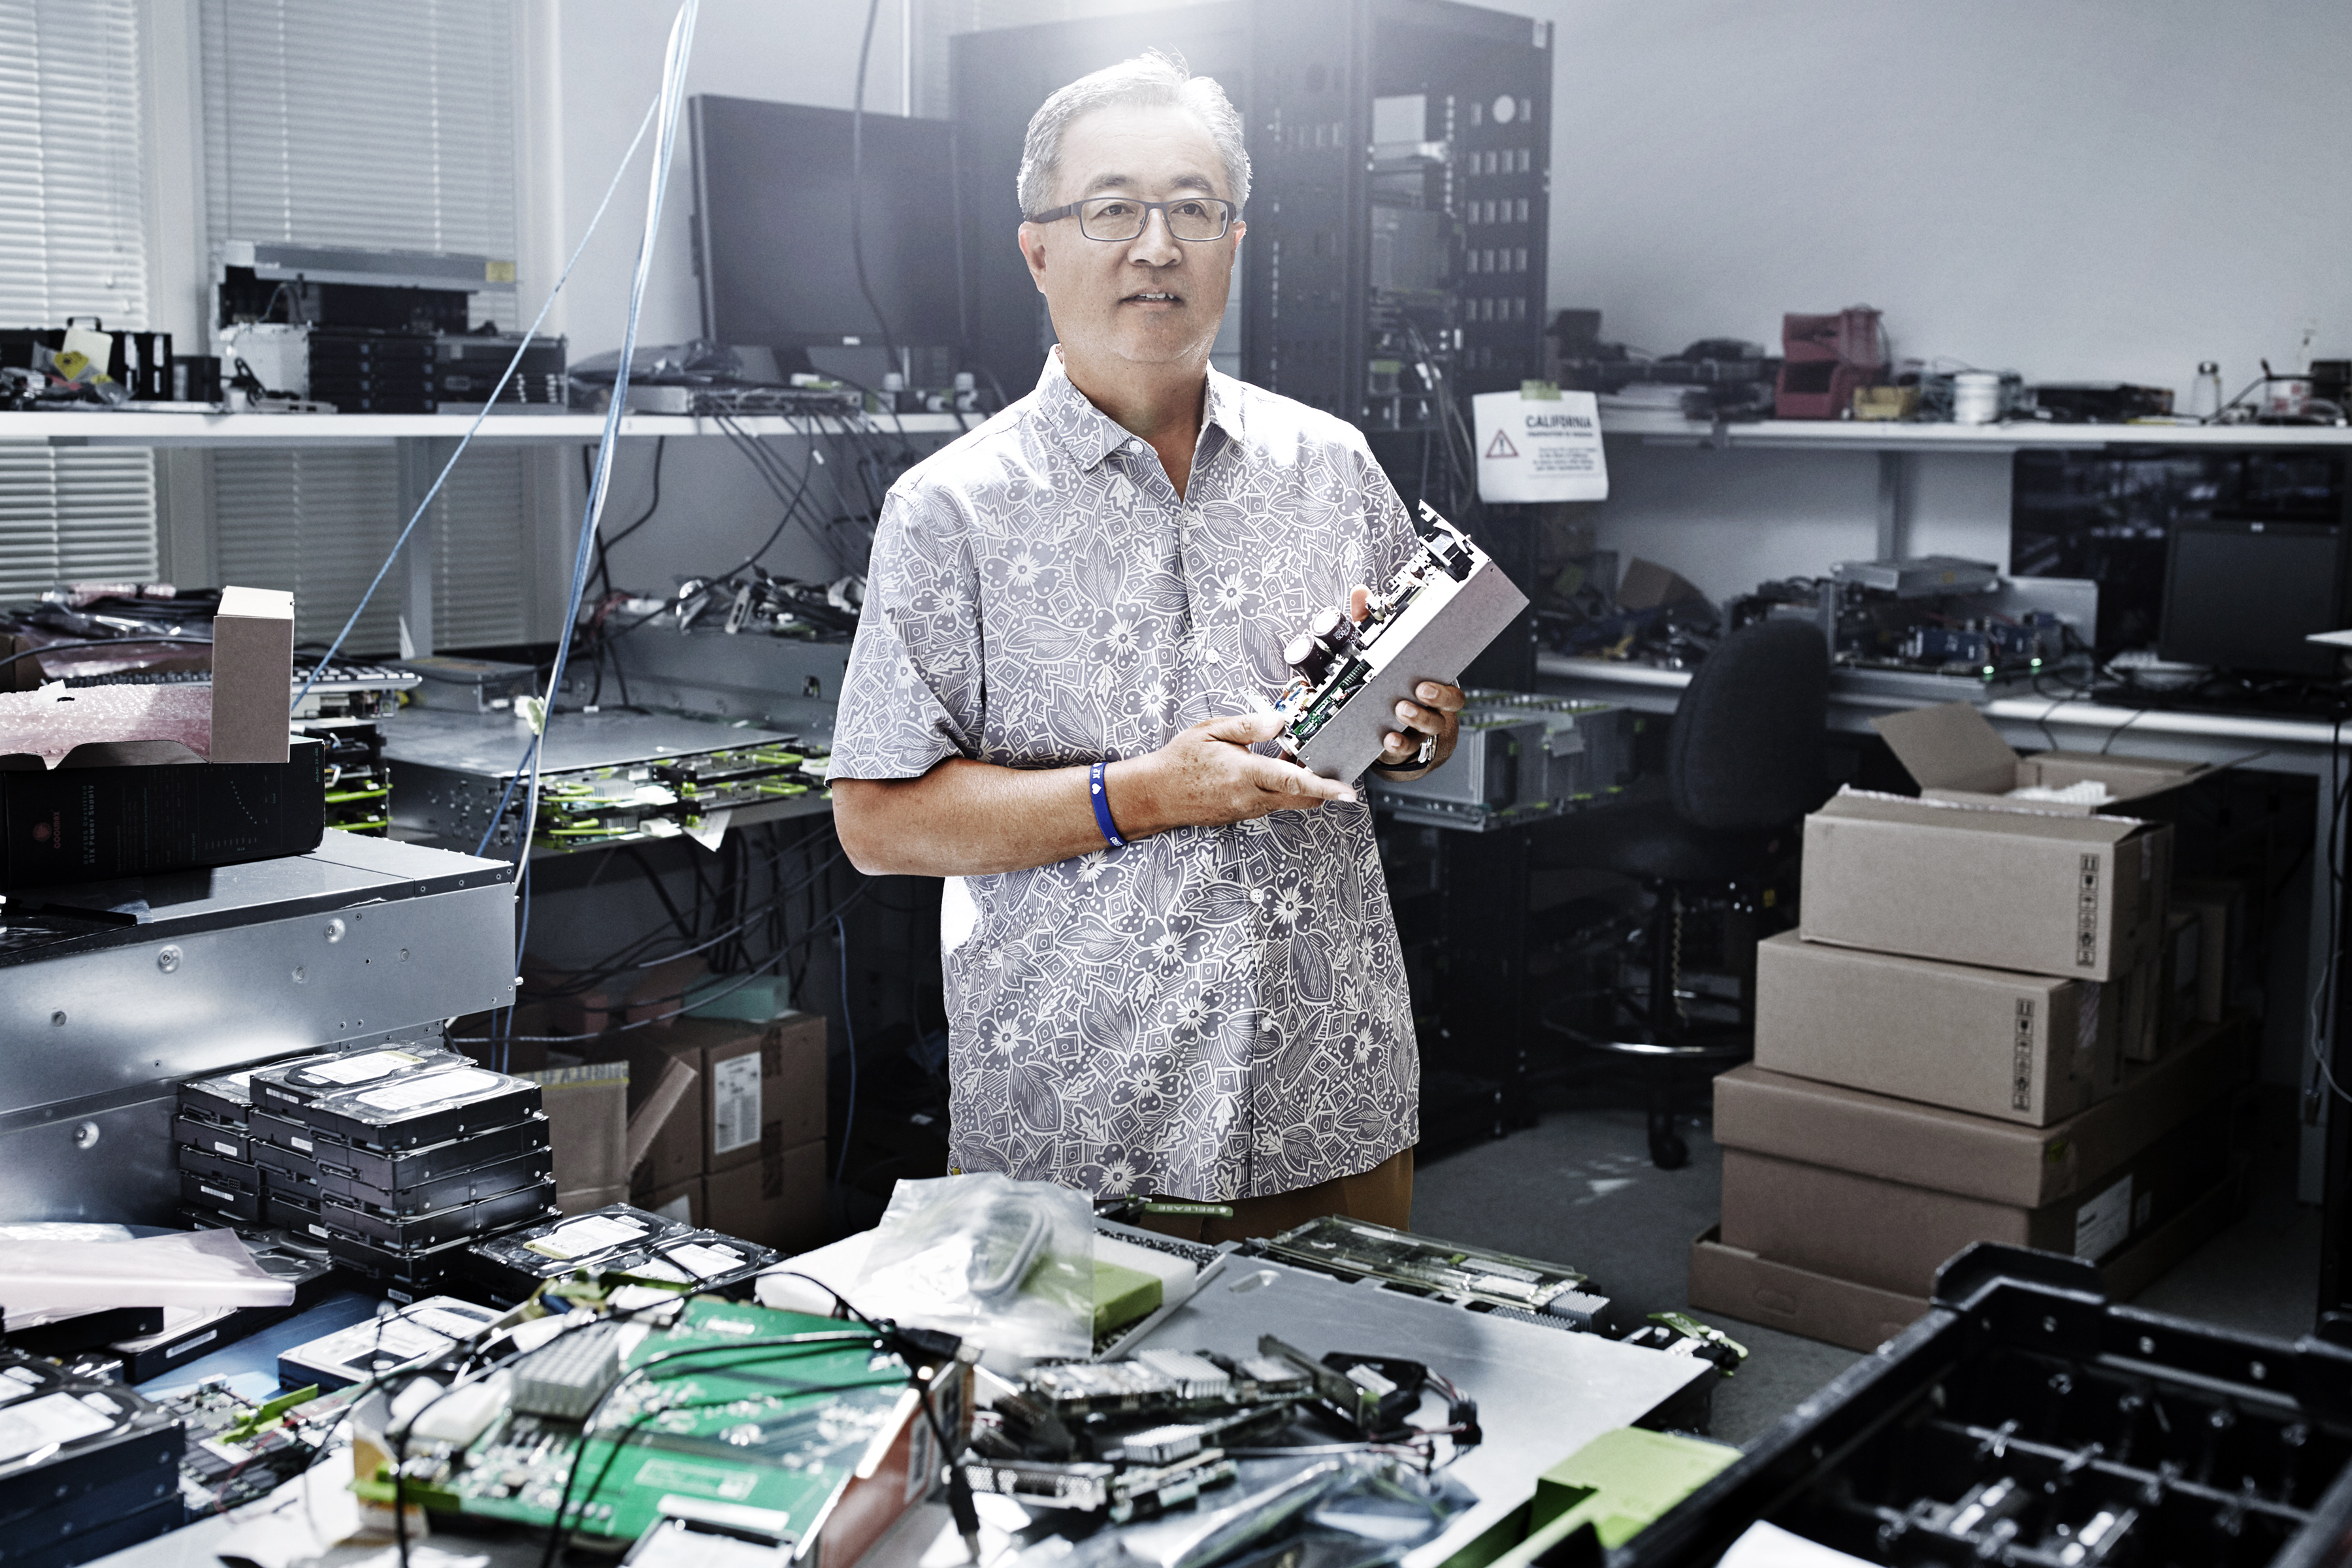 Jay Park, director of data center design and engineering